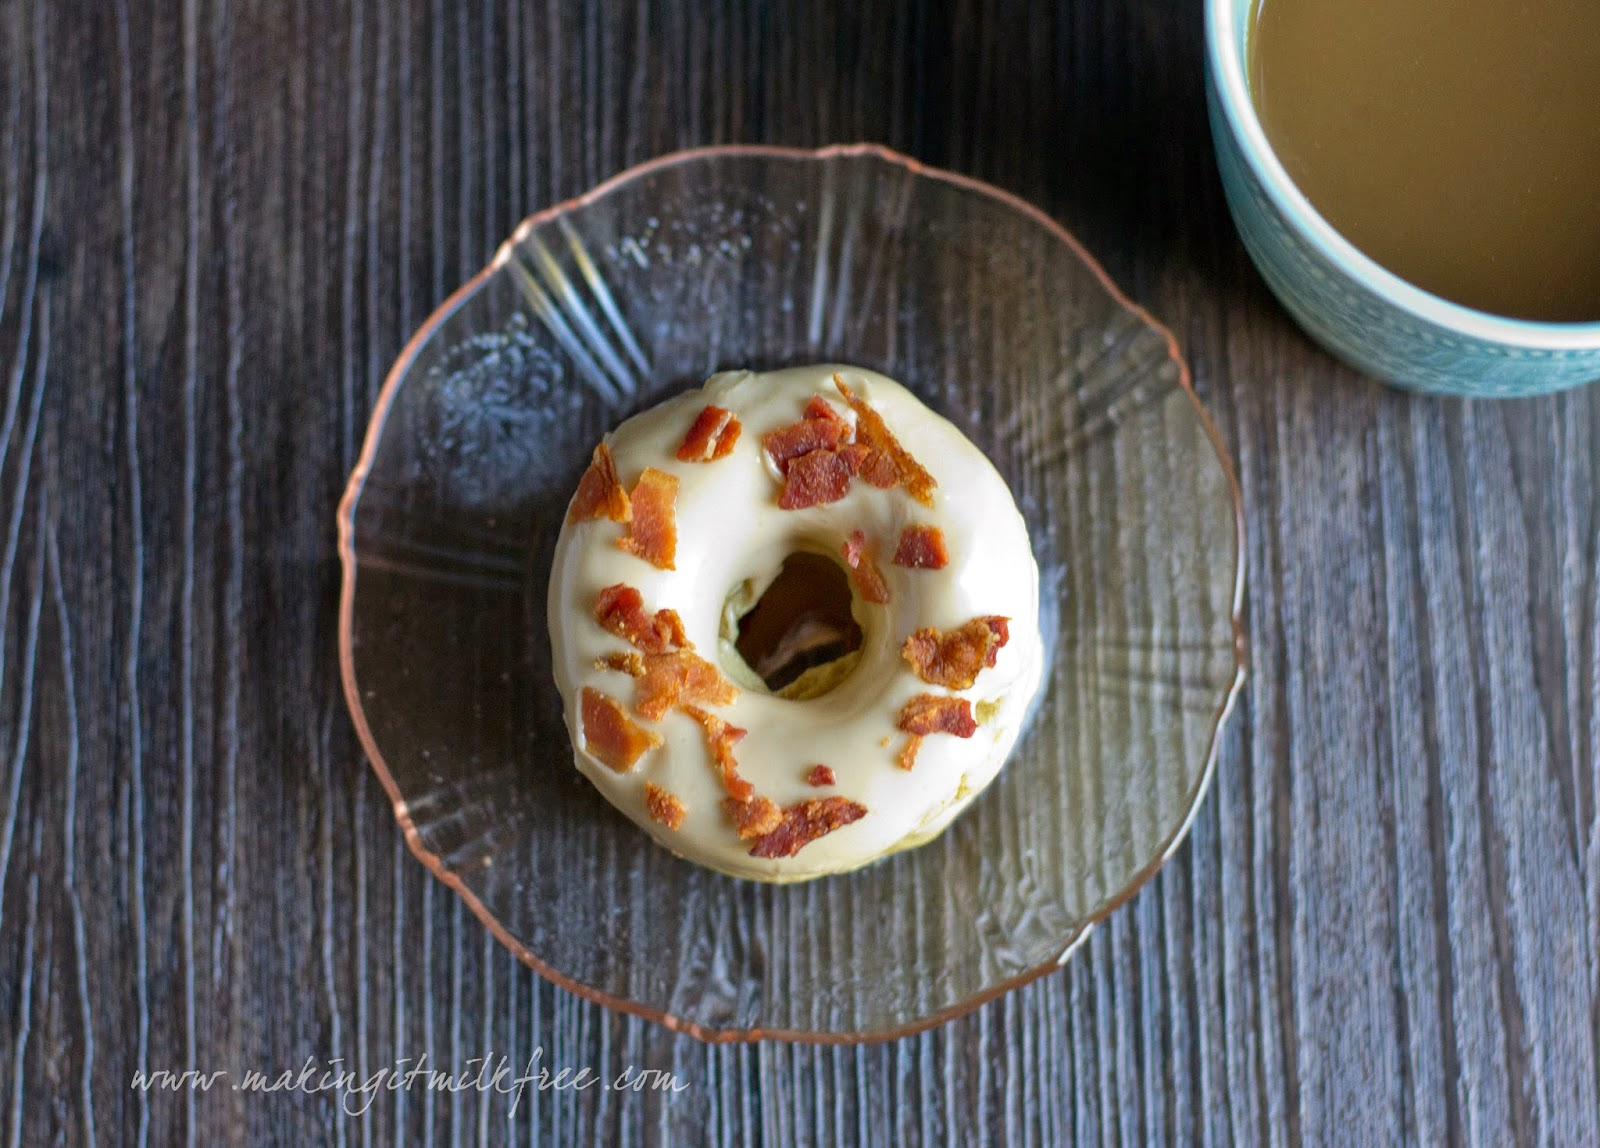 #glutenfree #dairyfree #eggfree #maple #bacon #donuts